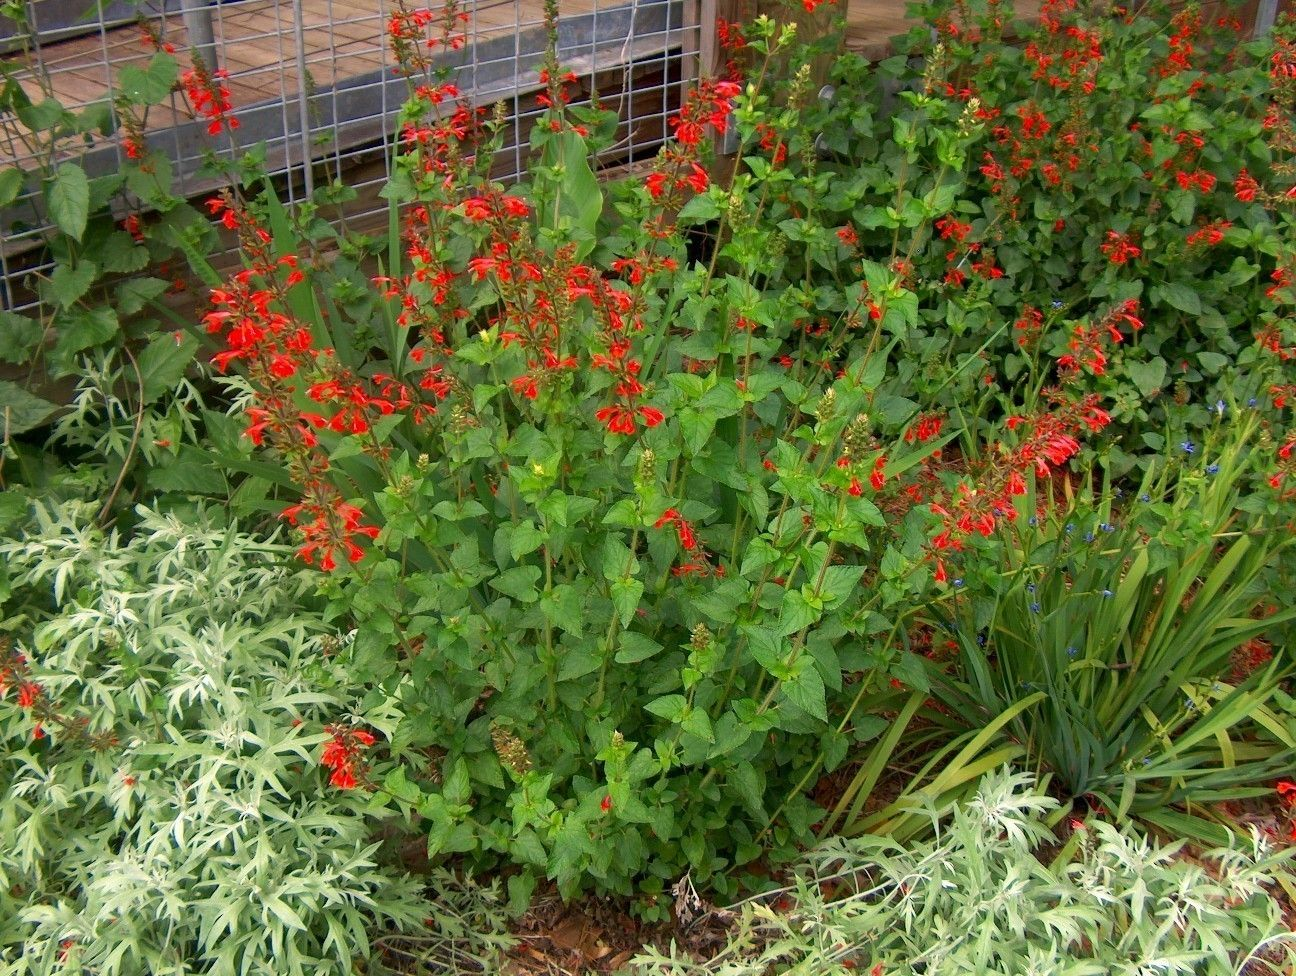 red texas plants | Online Plant Guide - Salvia coccinea